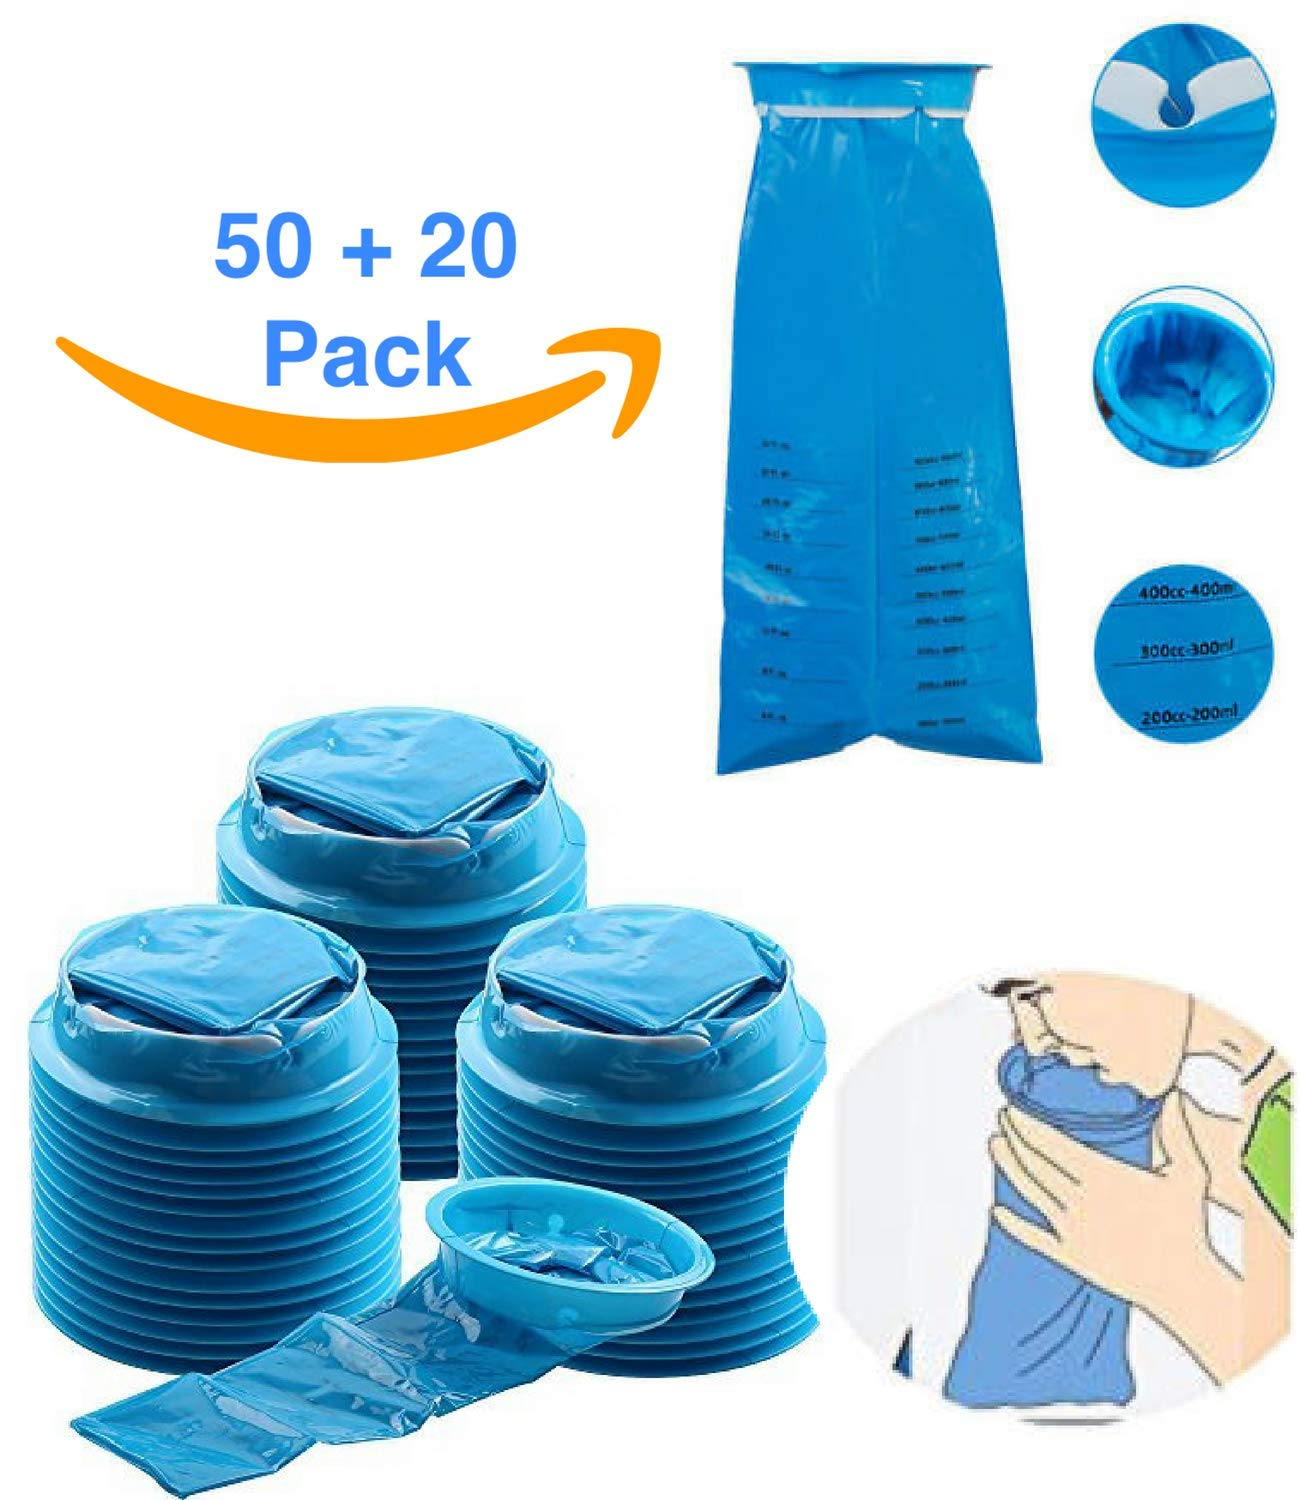 Vomit Bags for Car Disposable :: Emesis Bag :: Barf Bags Blue for Car Sick, Uber, Morning Sickness Multifunction 70 Count